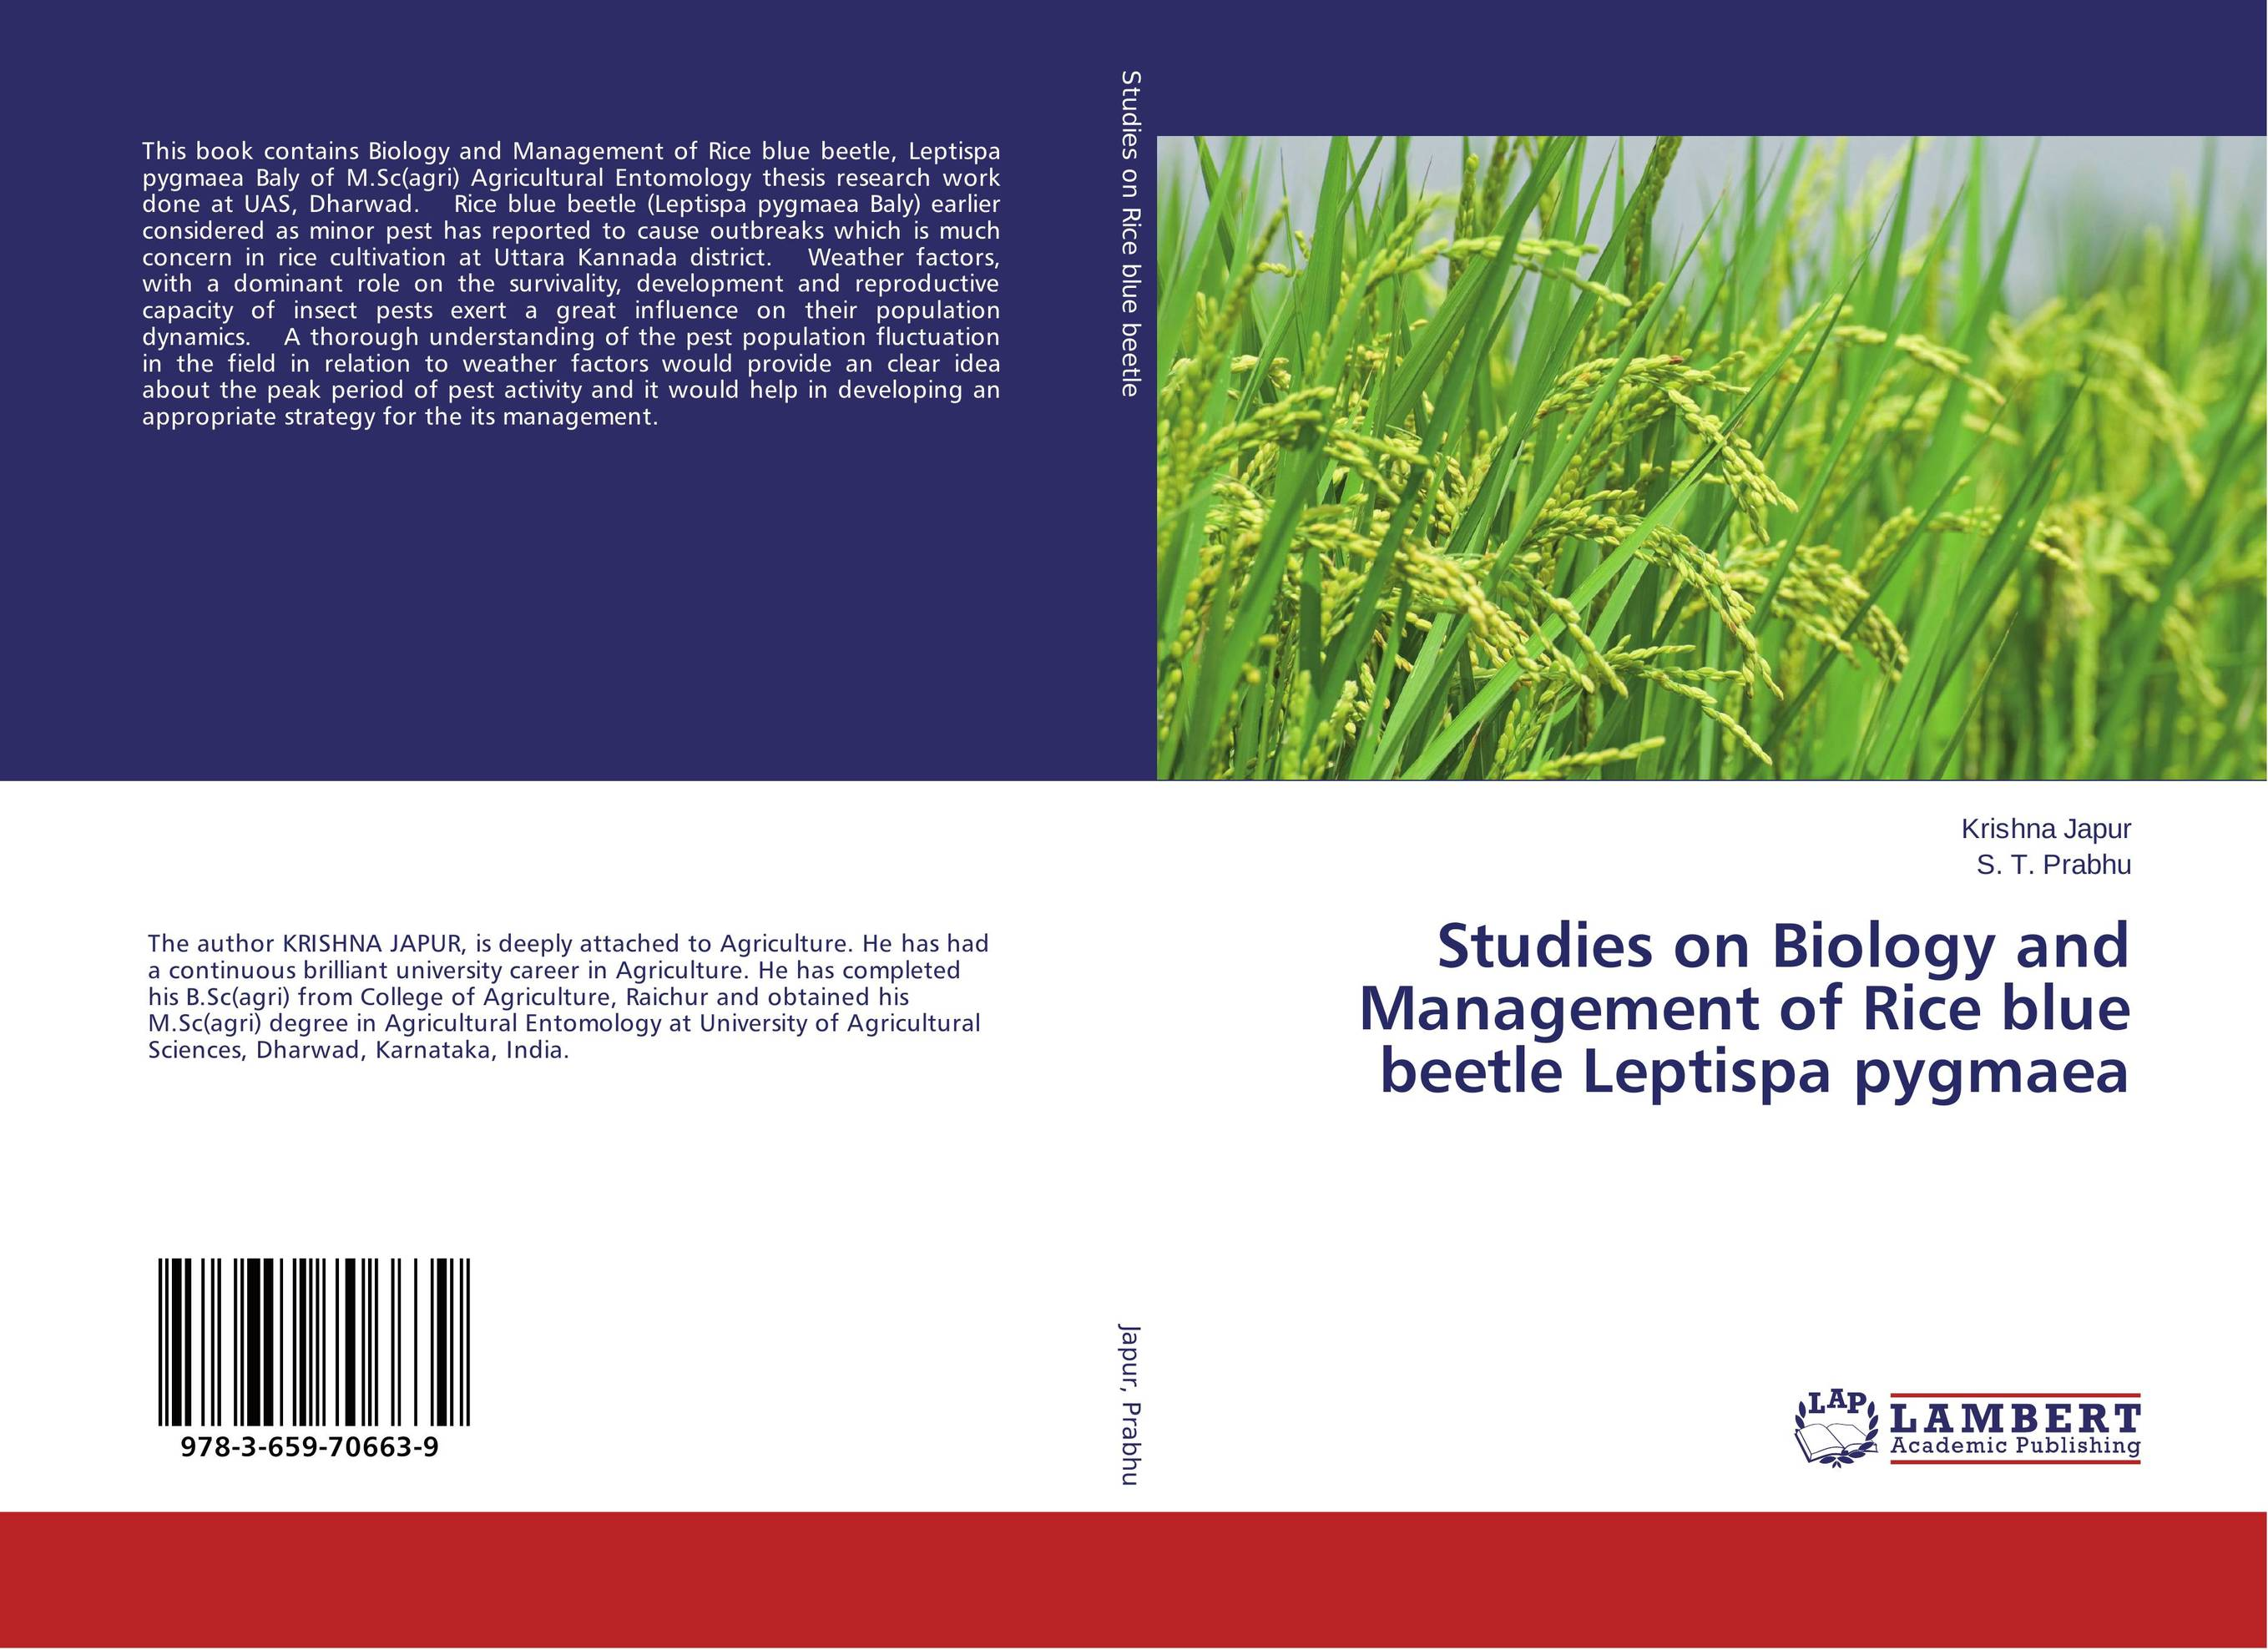 Studies on Biology and Management of Rice blue beetle Leptispa pygmaea k r k naidu a v ramana and r veeraraghavaiah common vetch management in rice fallow blackgram